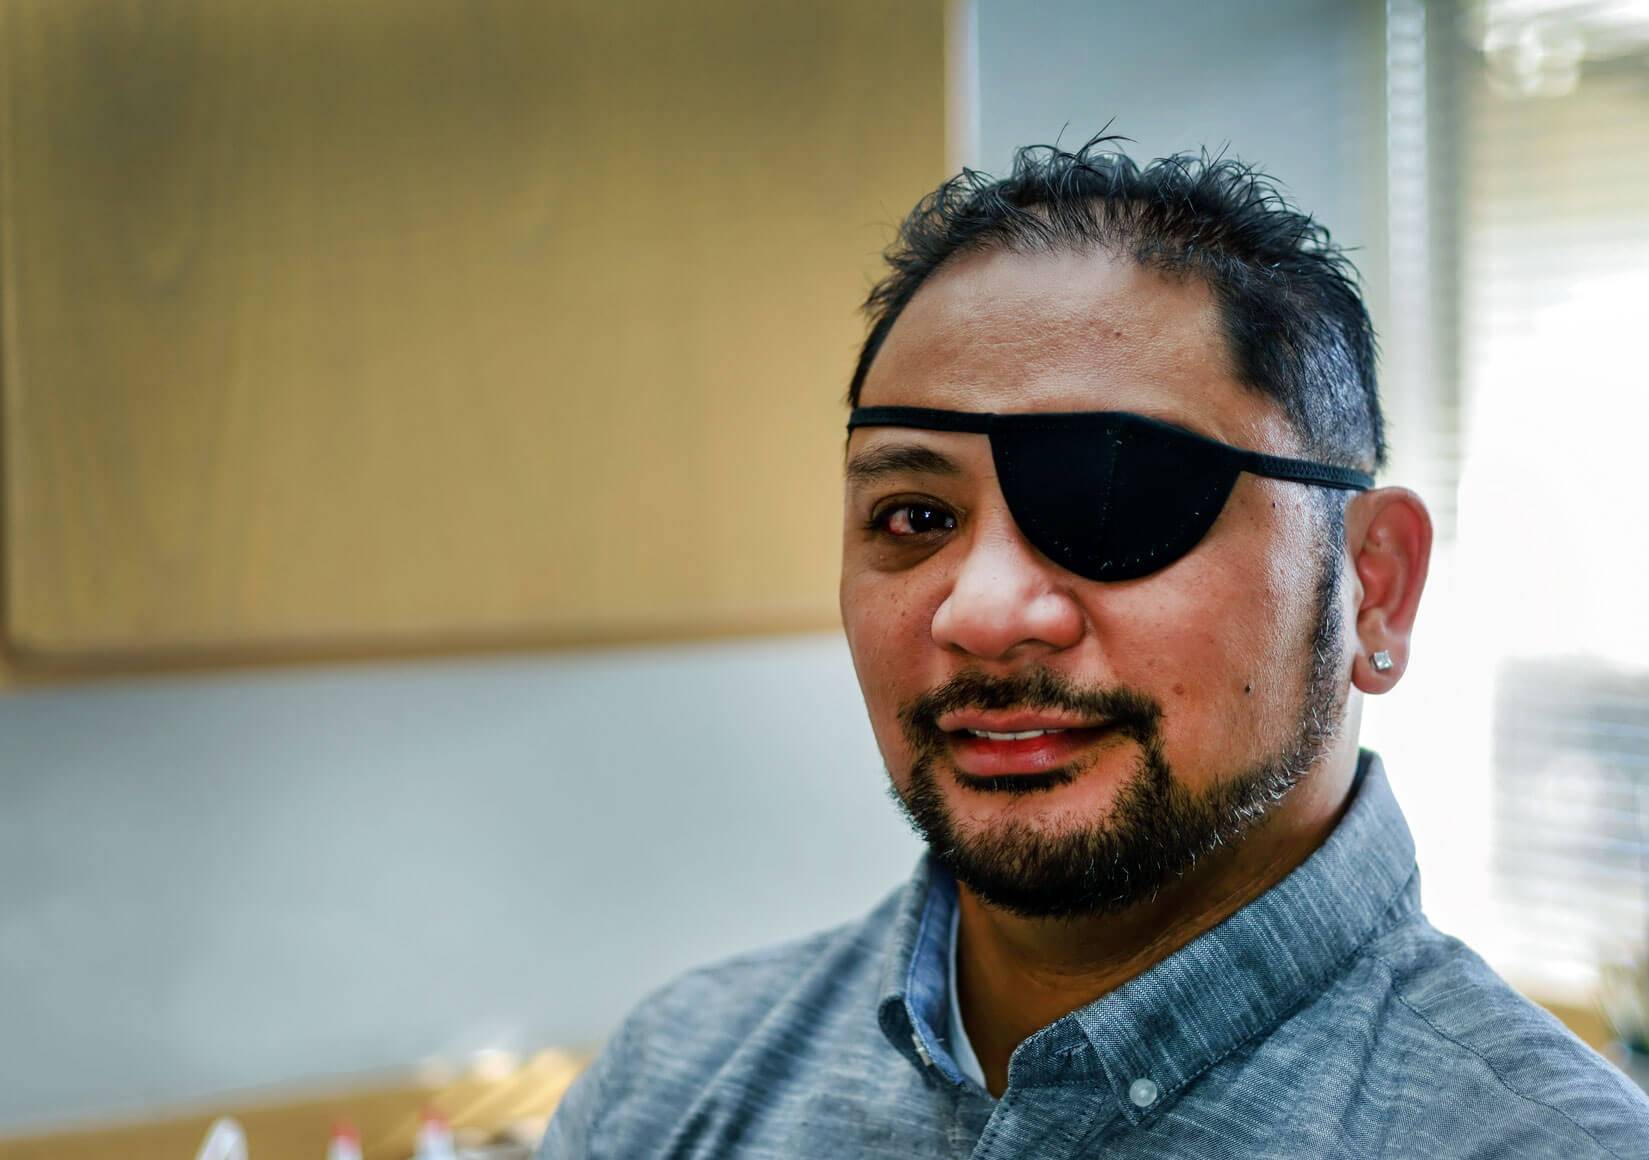 7 Reasons People Wear Eye Patches